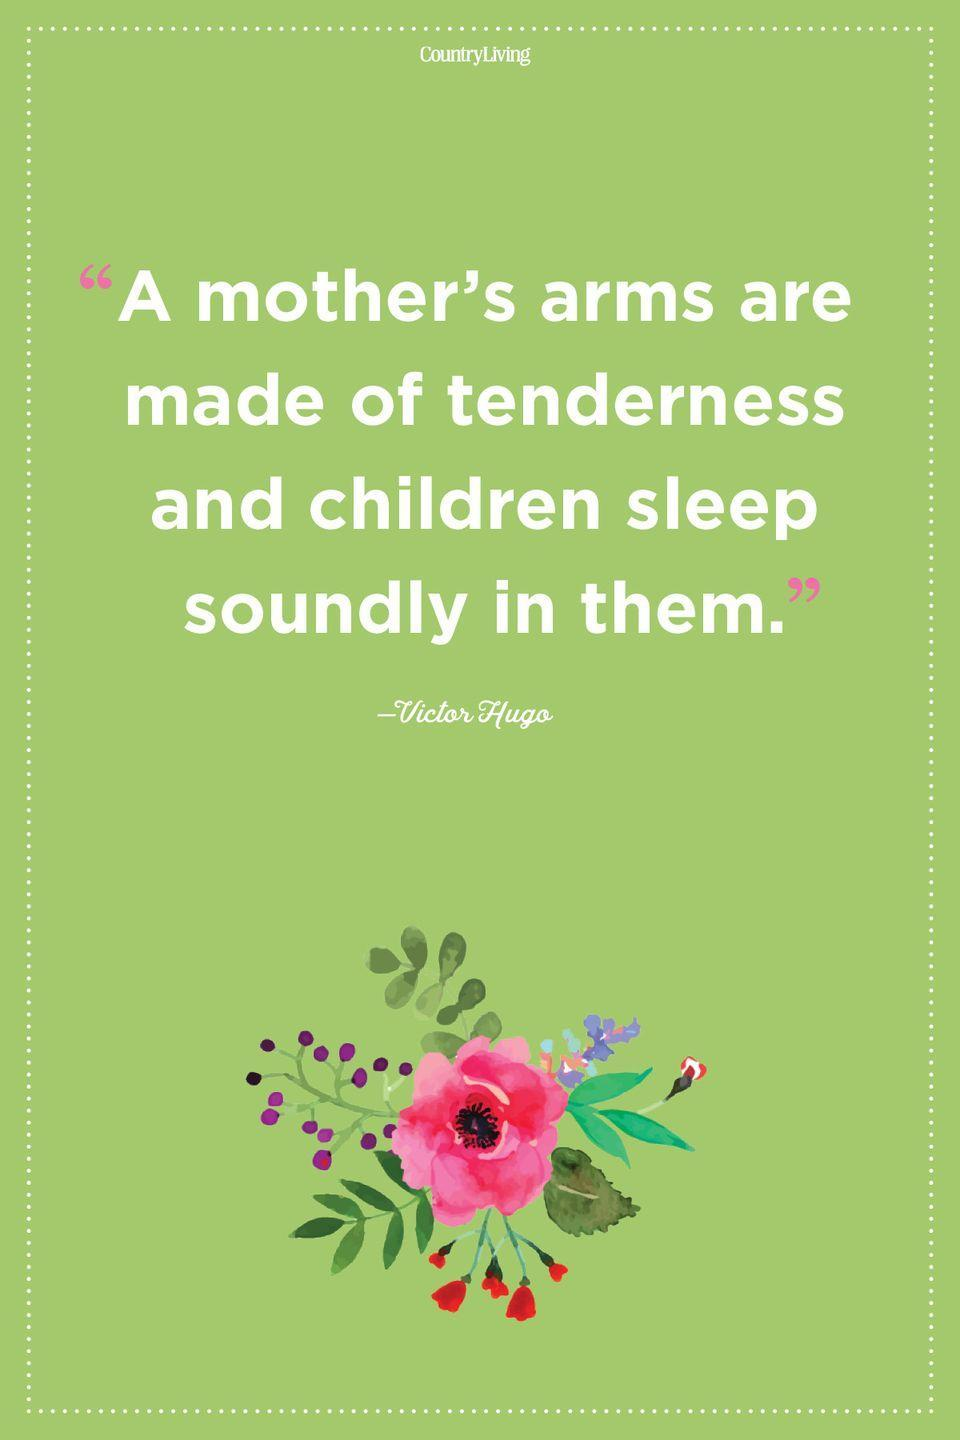 "<p>""A mother's arms are made of tenderness and children sleep soundly in them.""</p>"